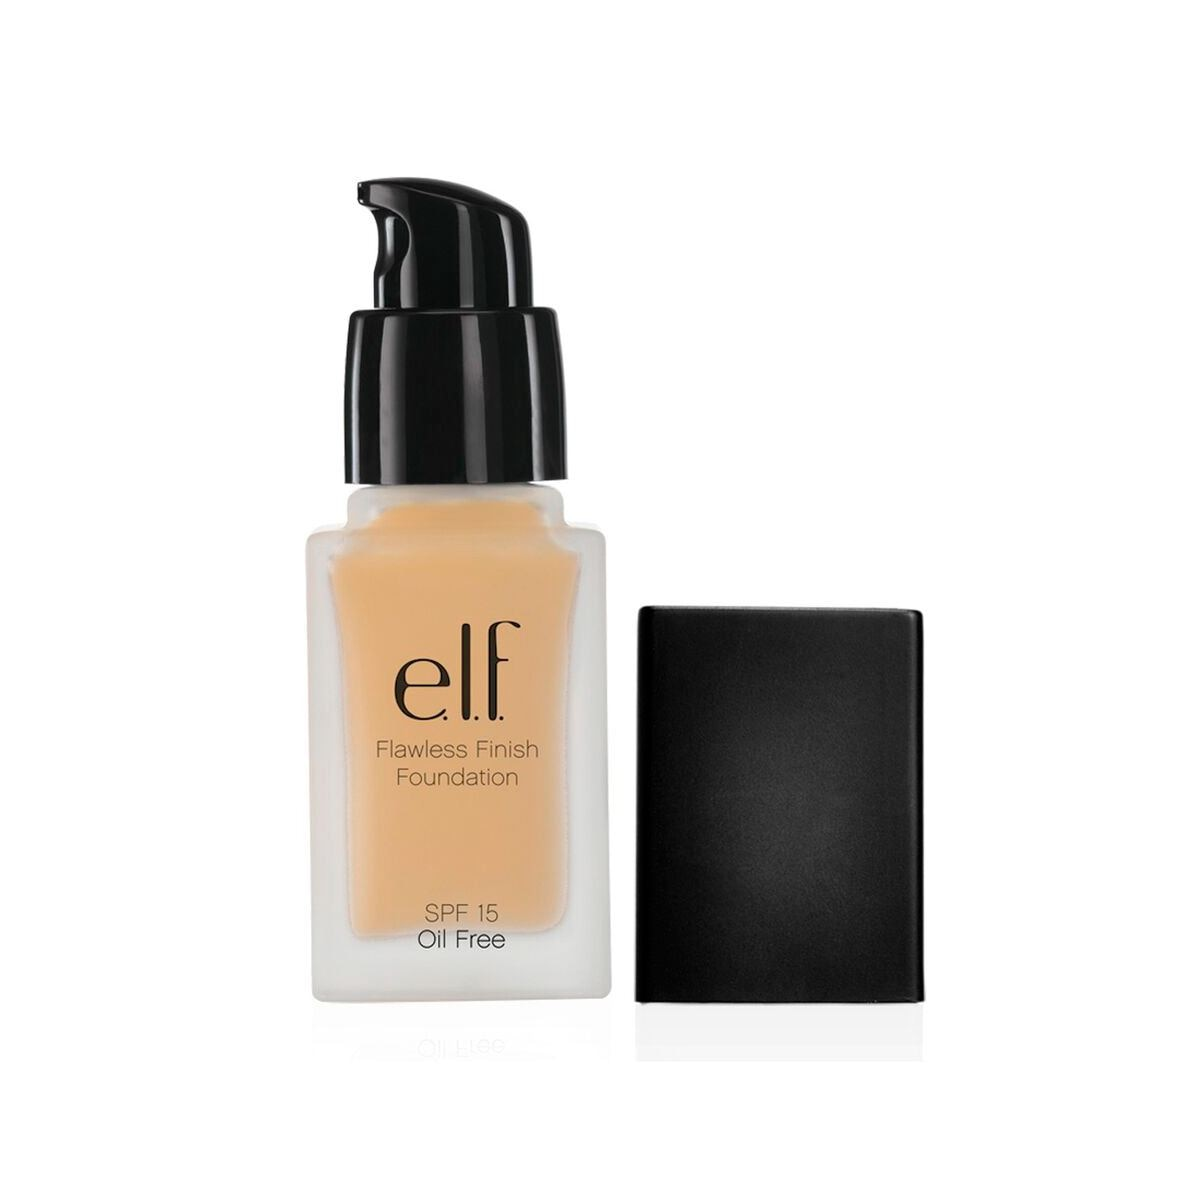 Face flawless finish foundation with spf15 - caramel  - Sanborns